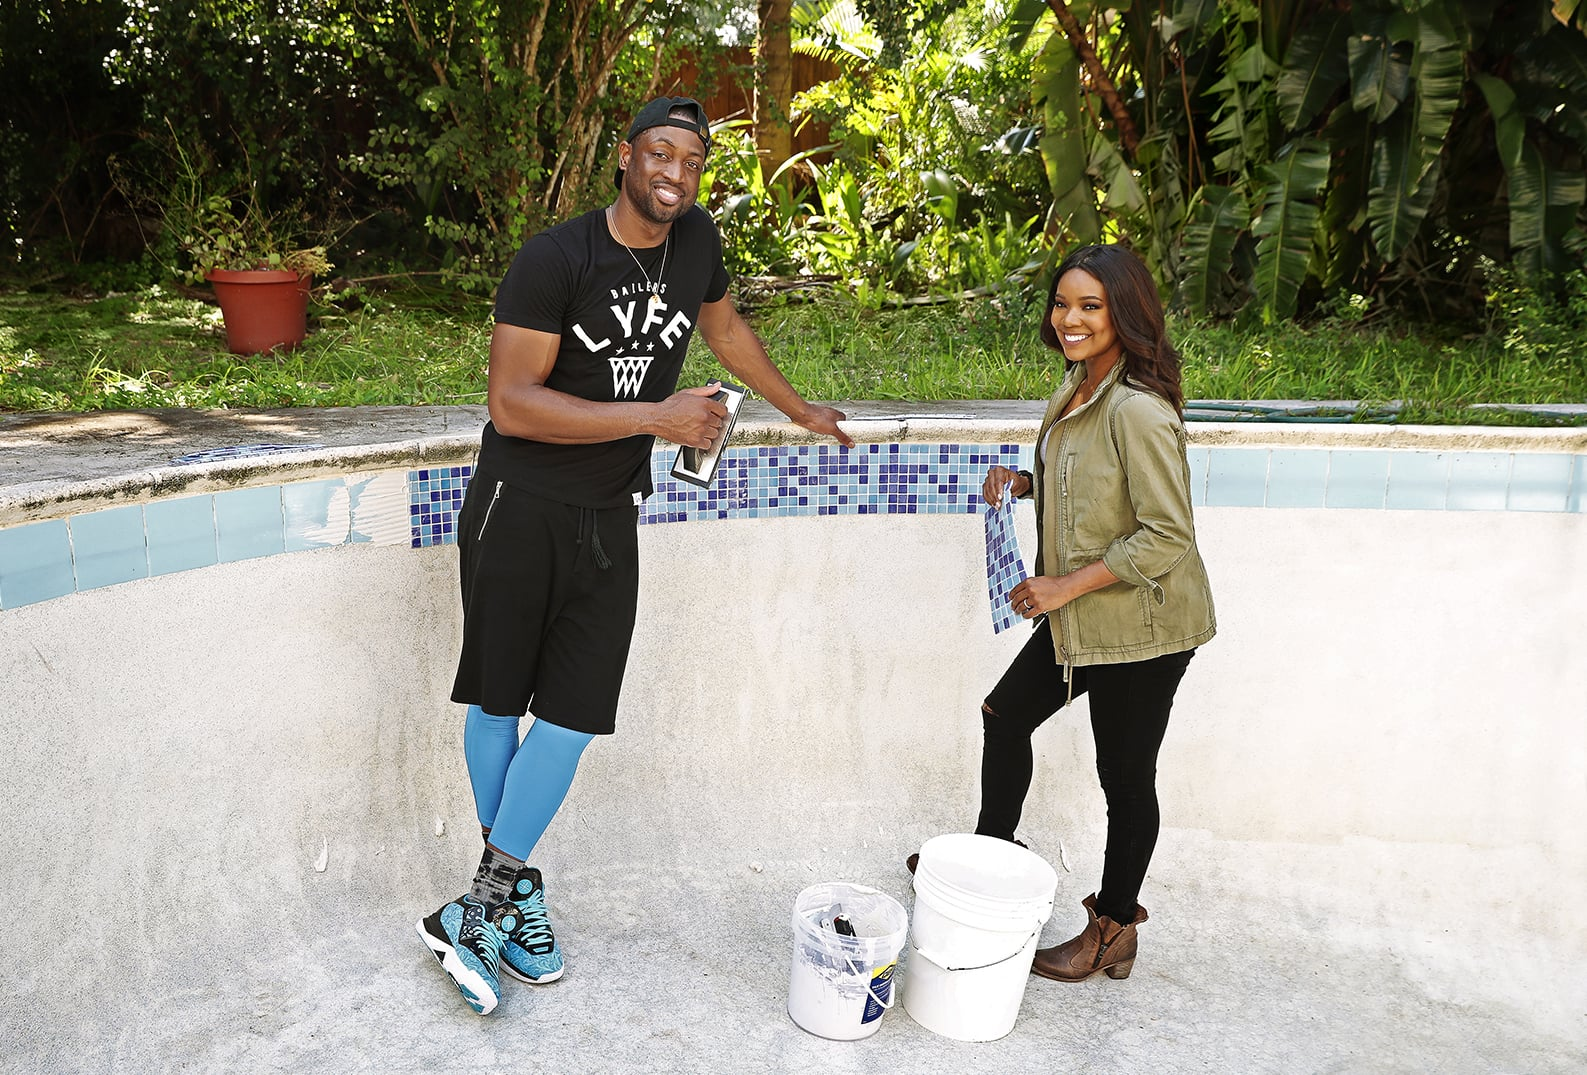 Gabrielle Union and Dwyane Wade inside the pool holding tools and tile at the home they are renovating for the Gabrielle Union and Dwyane Wade Project.